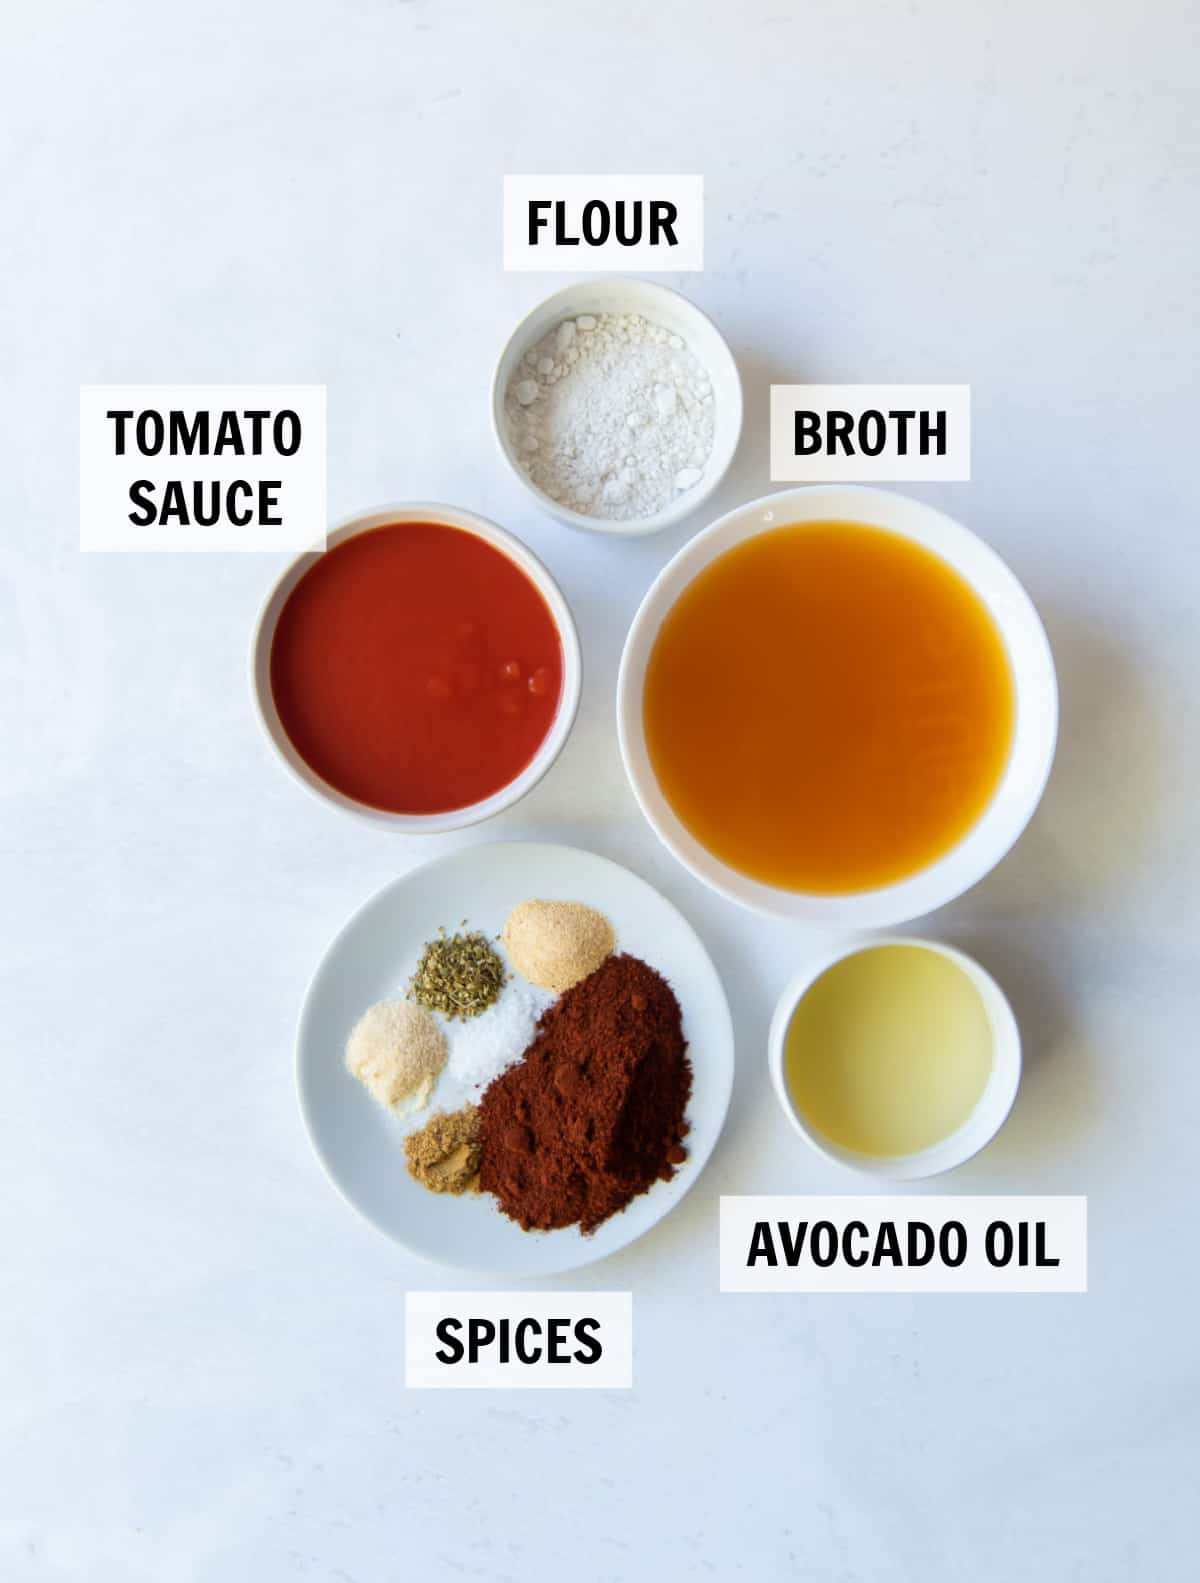 All the ingredients and spiced for easy enchilada sauce measured in white bowls